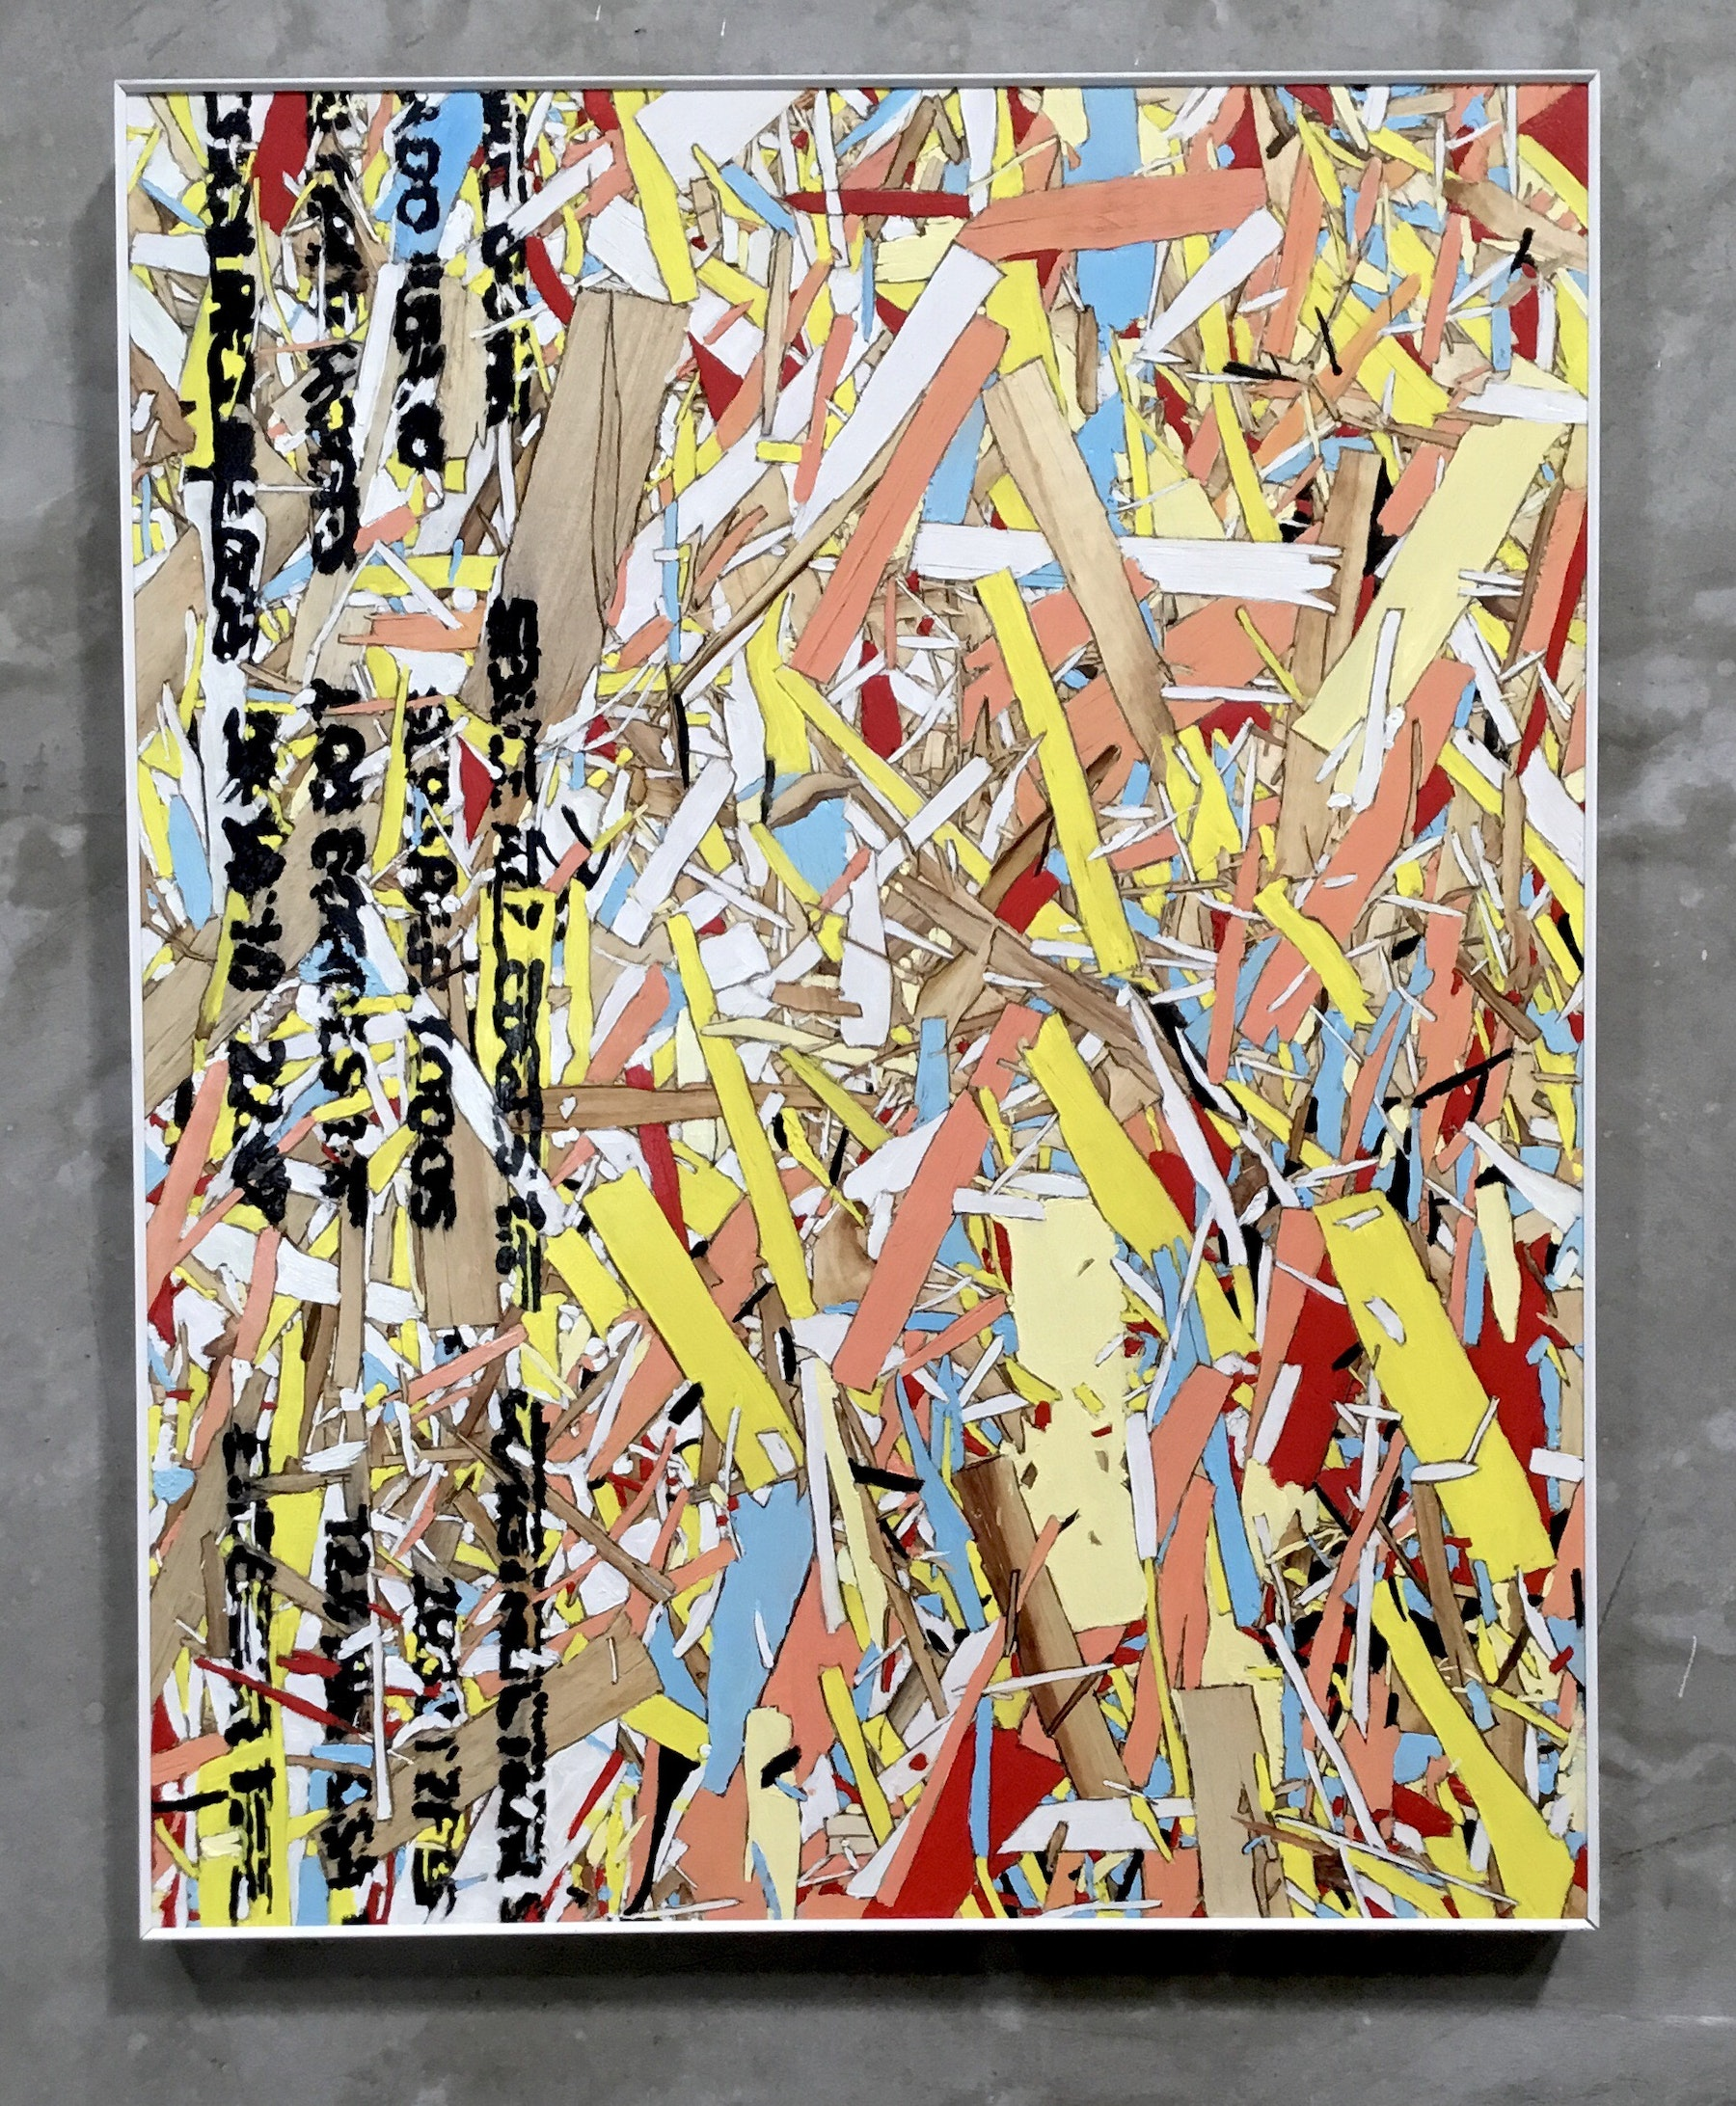 """Kim Dingle """"Home Depot Coloring Books (Anyone Can Do It),"""" 2019 Oil on OSB 24 x 19"""" [HxW] (60.96 x 48.26 cm) Inventory #DIN283 Courtesy of the artist and Vielmetter Los Angeles Photo credit: Jeff McLane"""